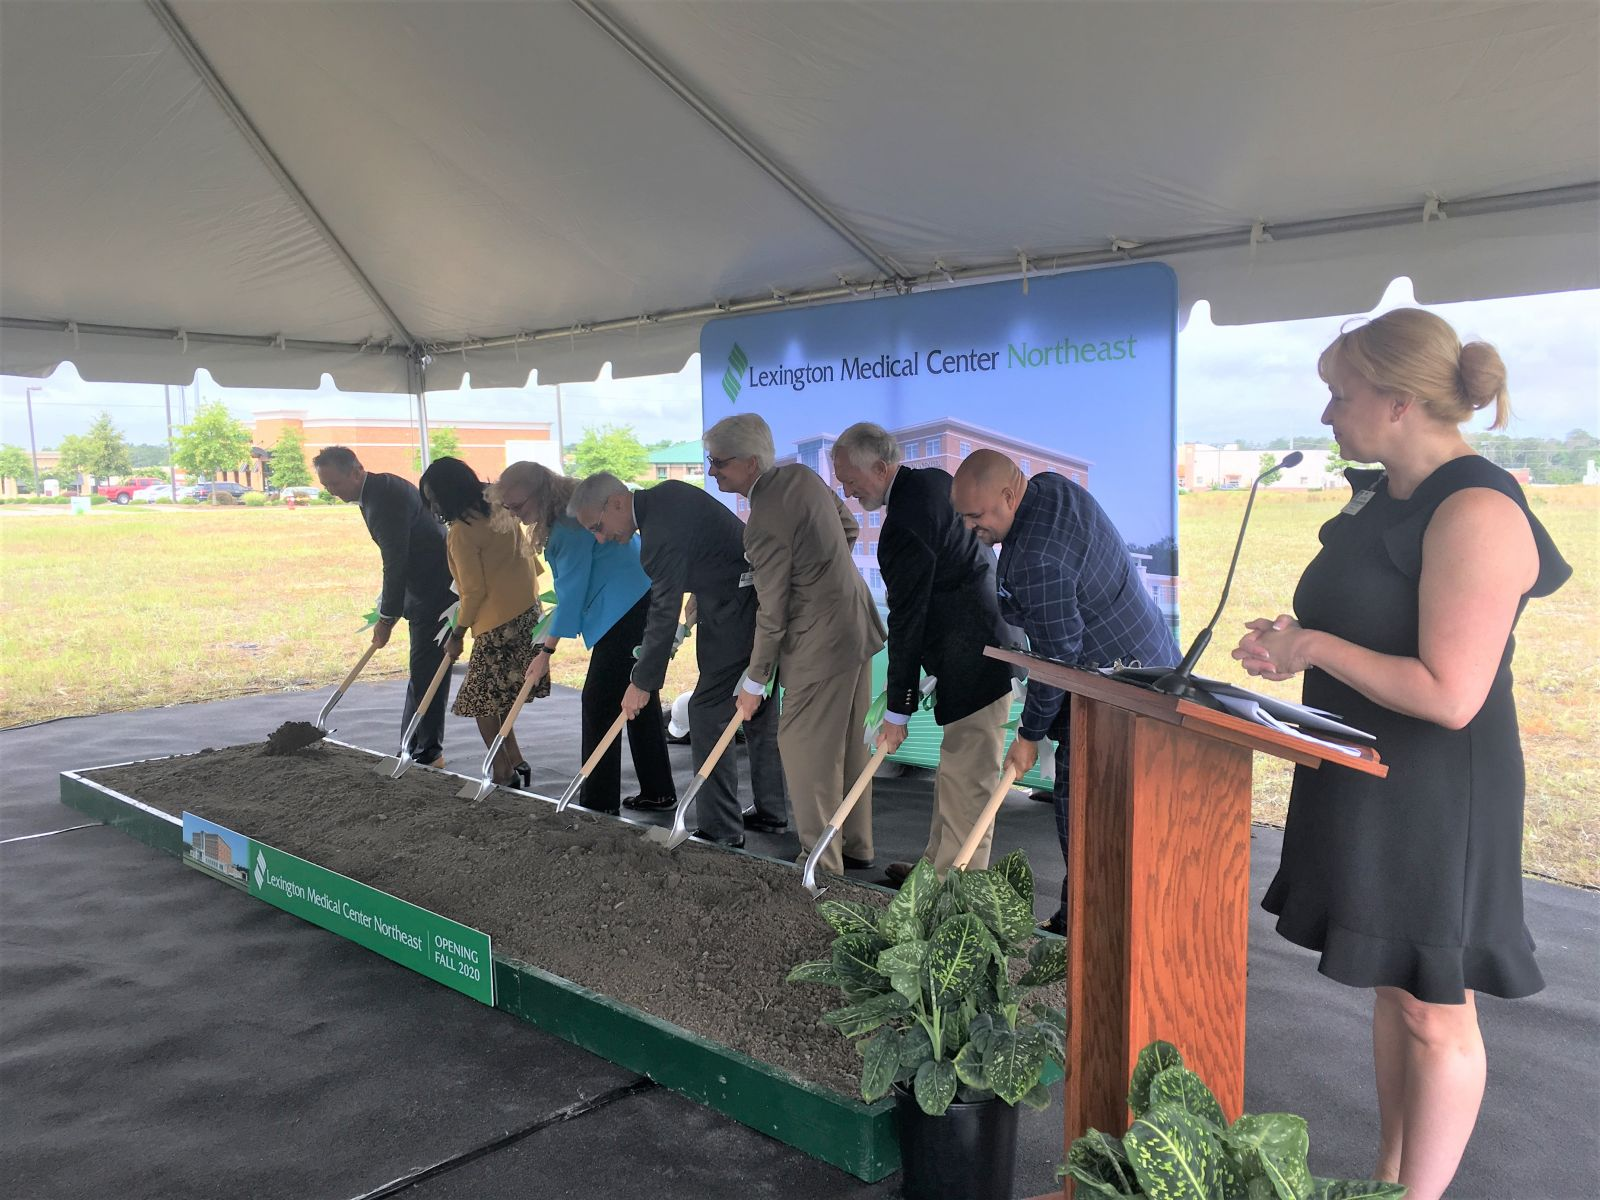 Lexington Medical Center officials break ground on a new outpatient center in Northeast Columbia (Photo/Renee Sexton)